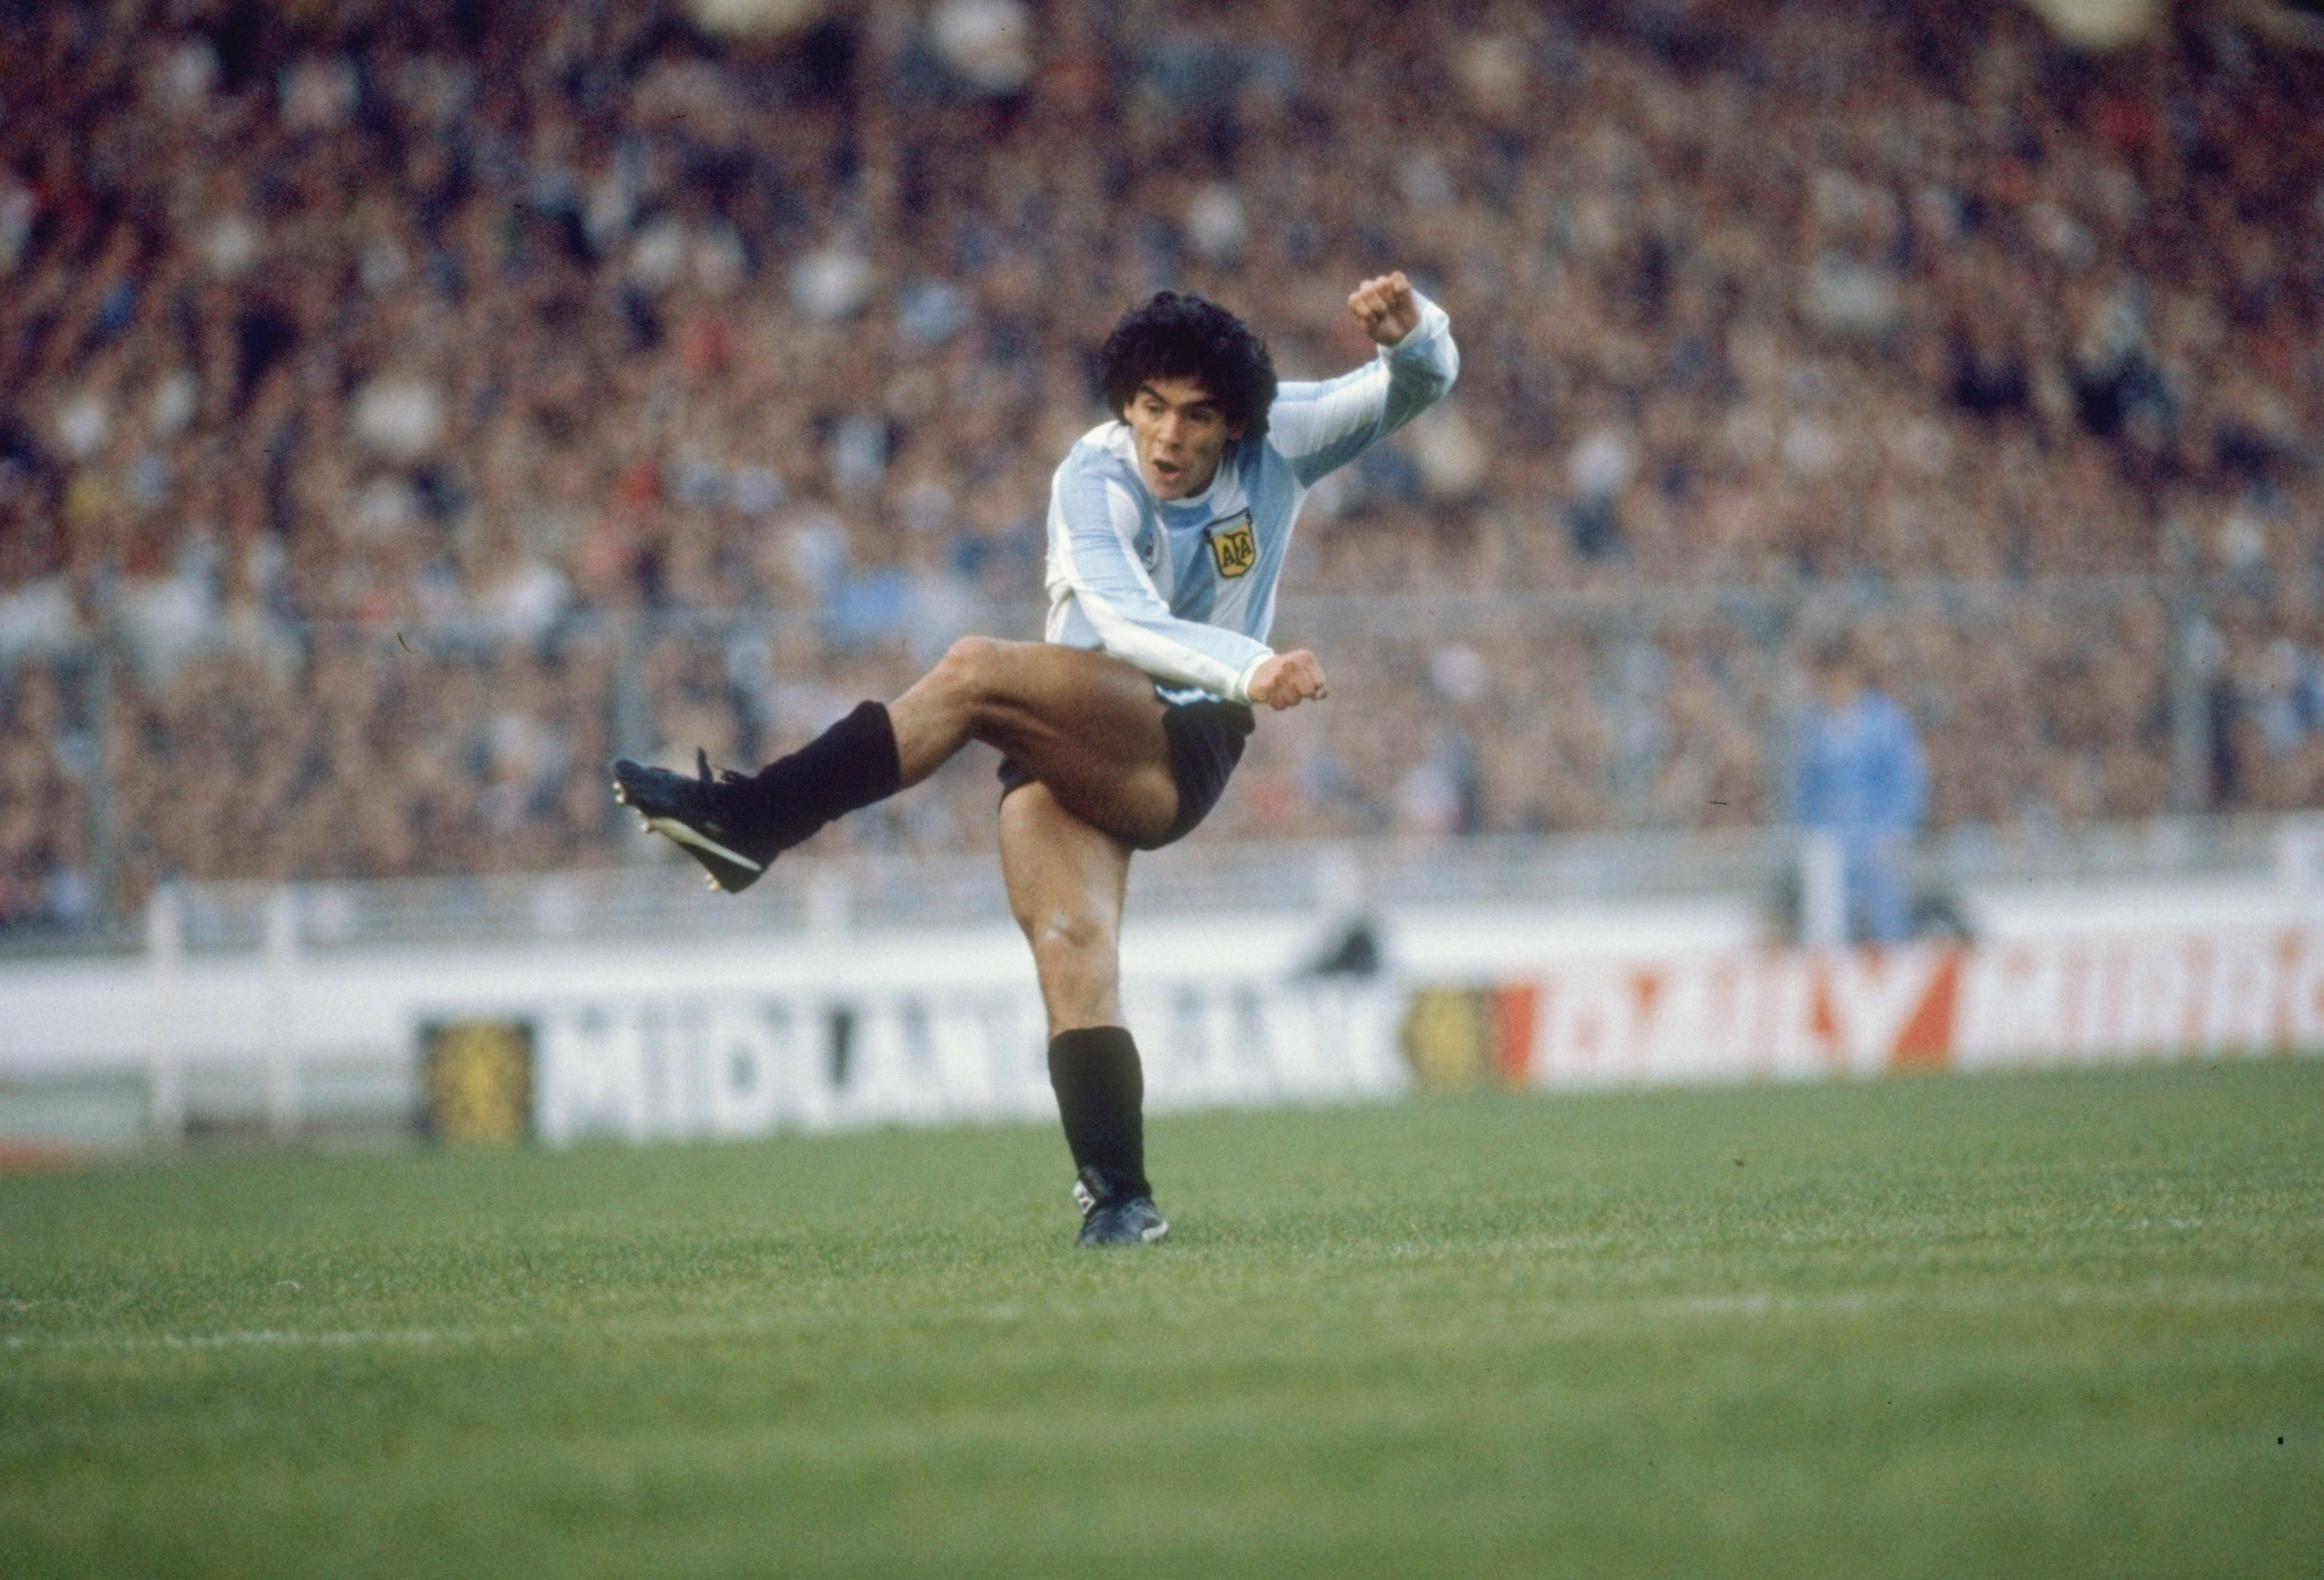 Soccer God Diego Maradona Is Getting a TV Series About His Life